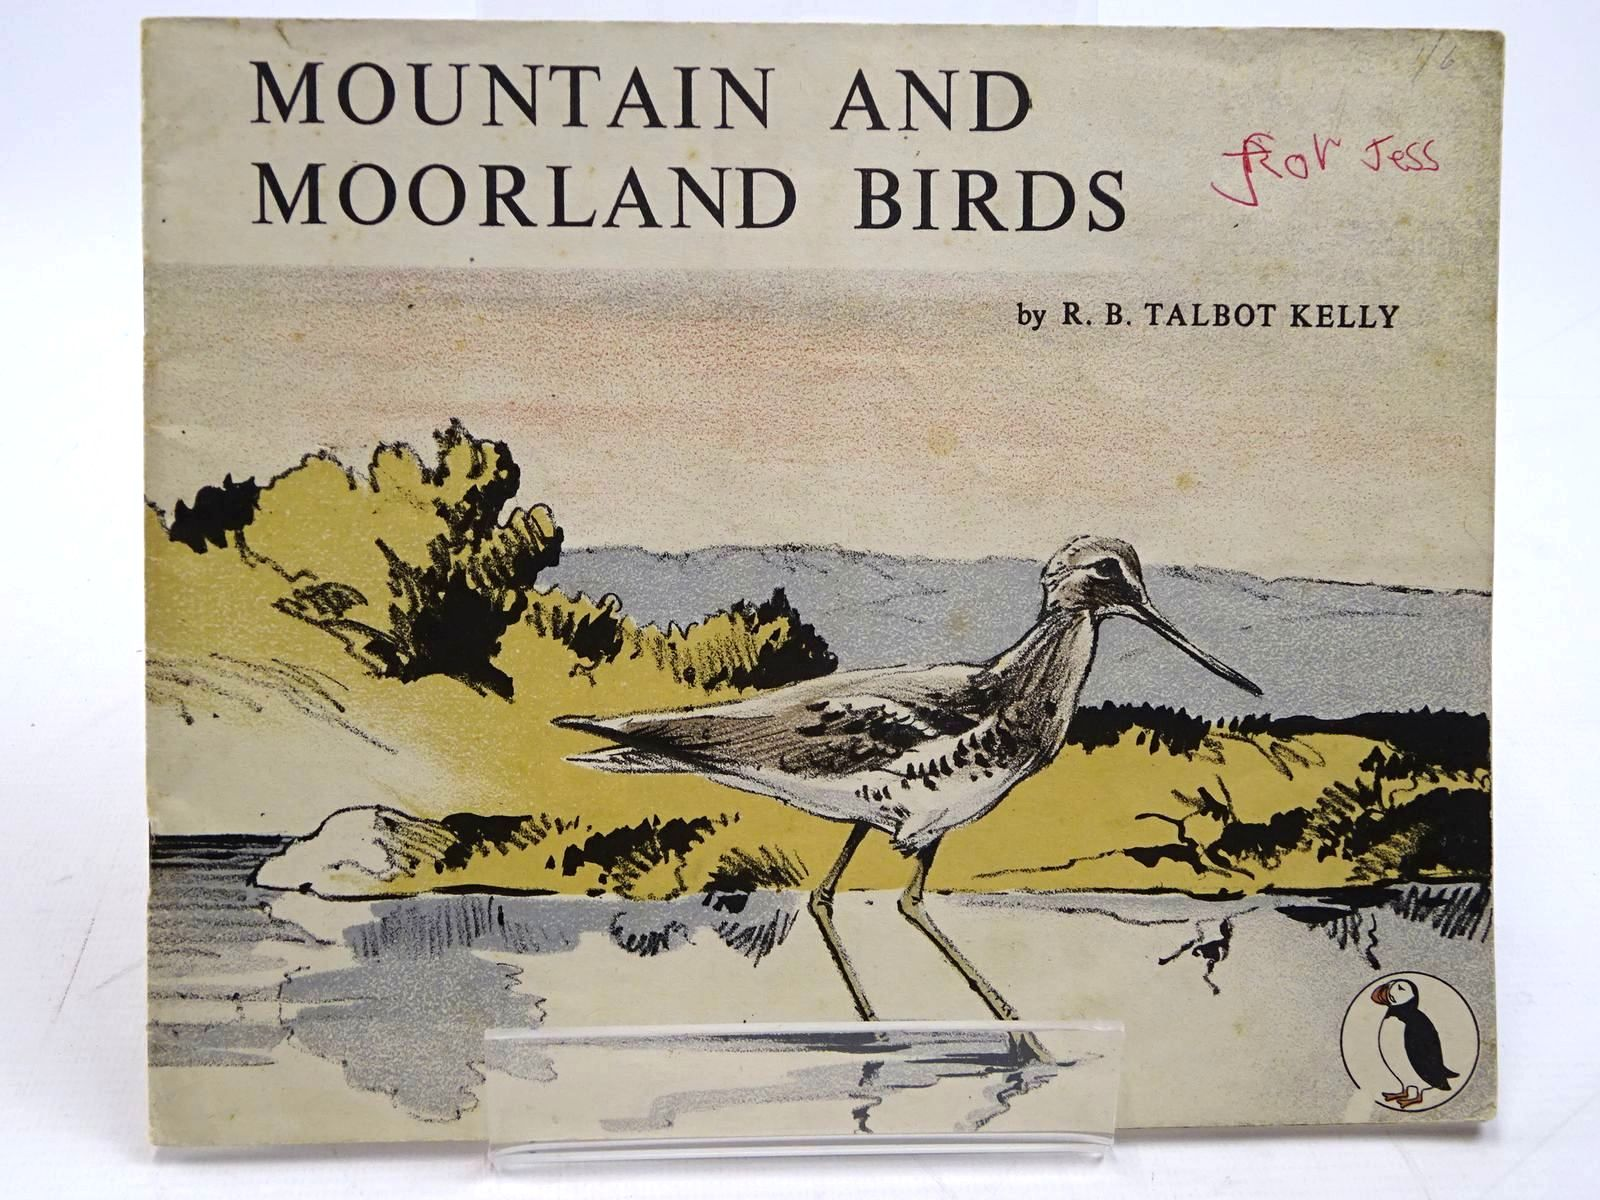 Photo of MOUNTAIN AND MOORLAND BIRDS written by Kelly, R.B. Talbot illustrated by Kelly, R.B. Talbot published by Penguin (STOCK CODE: 2131410)  for sale by Stella & Rose's Books